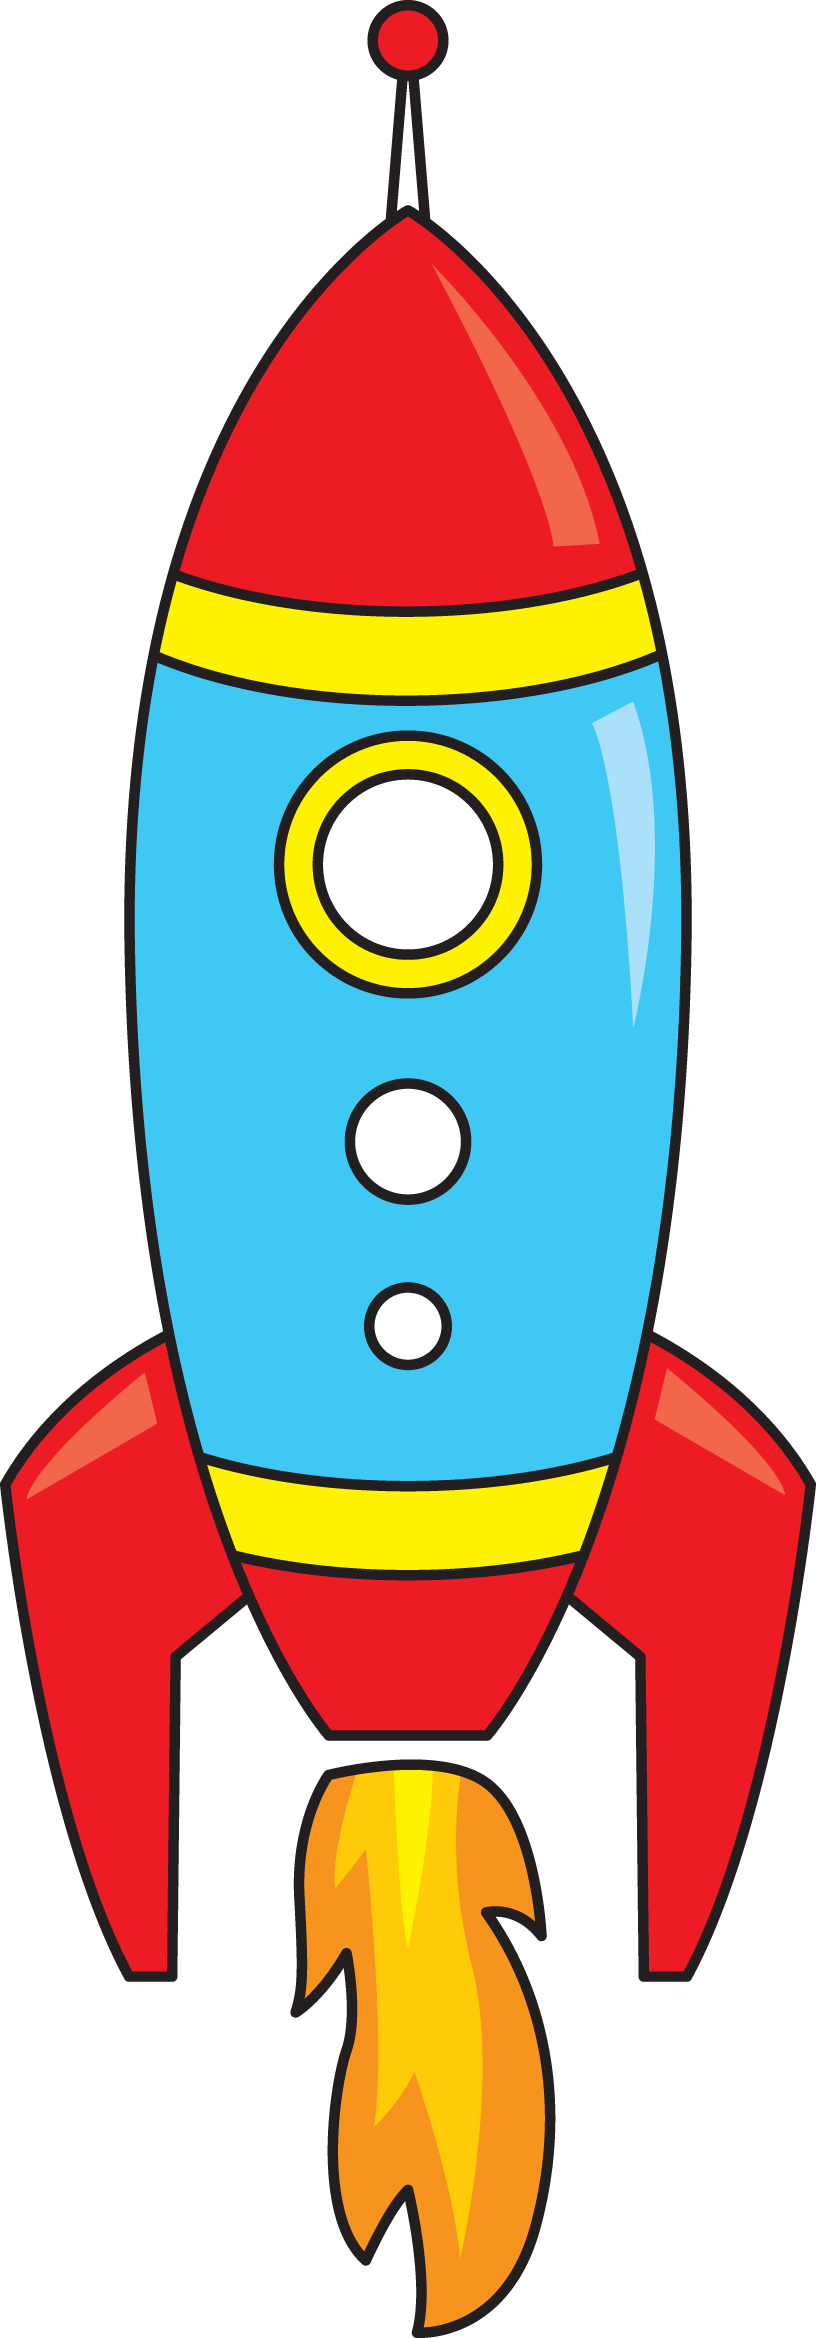 Free Rocket Cliparts, Download Free Clip Art, Free Clip Art.